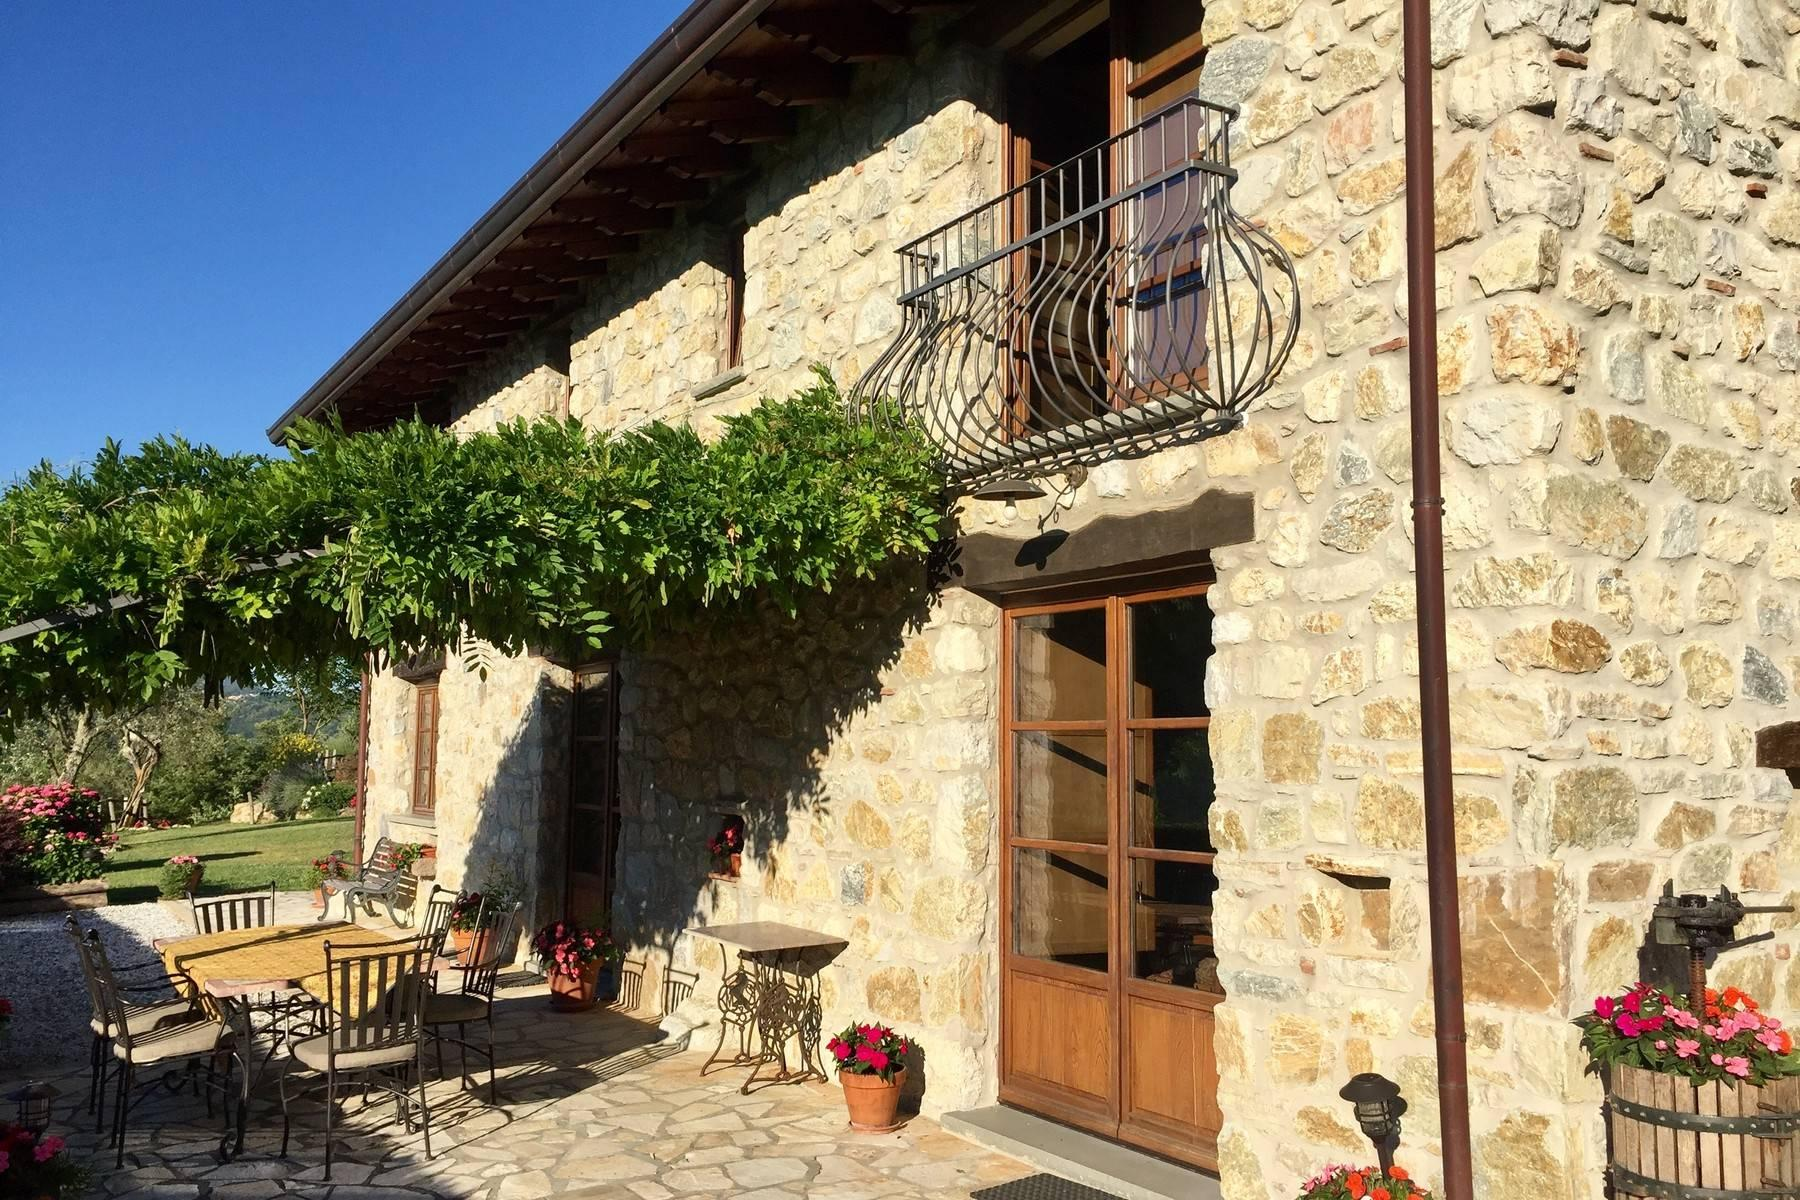 Delightful country house on the Lunigiana's hills - 15